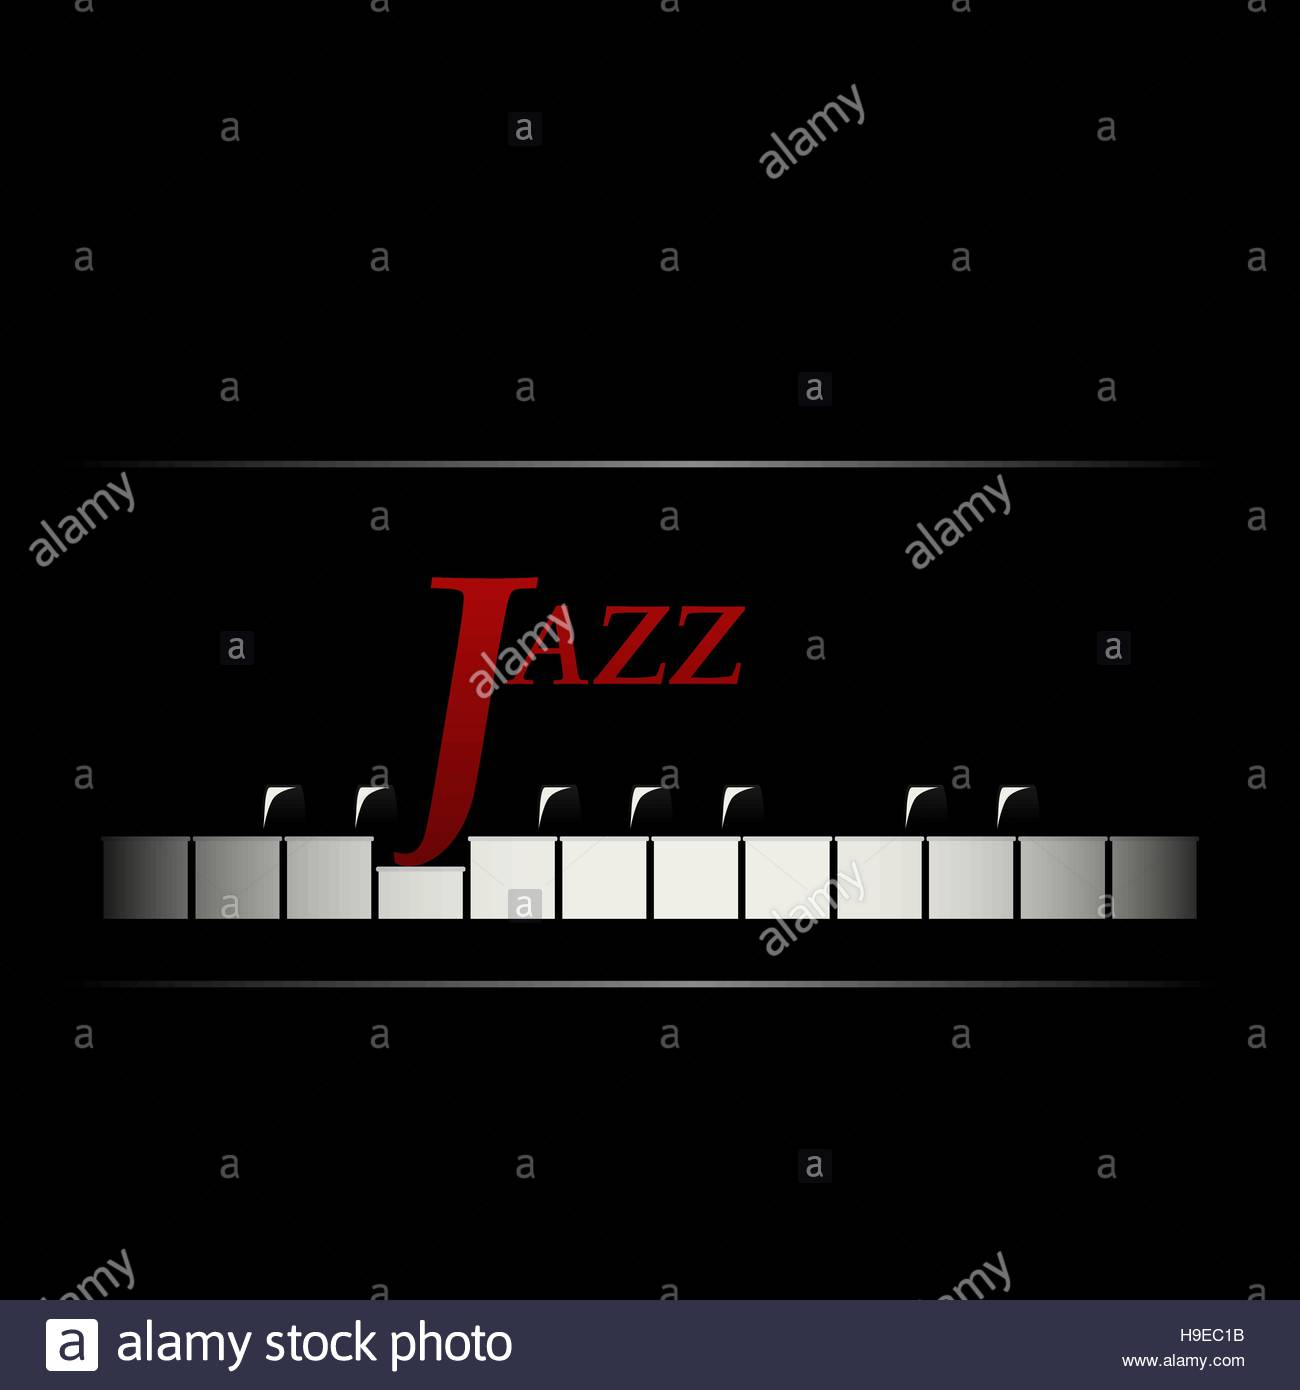 Jazz cafe concept abstract piano keyboard musical creative stock jazz cafe concept abstract piano keyboard musical creative invitation stopboris Image collections